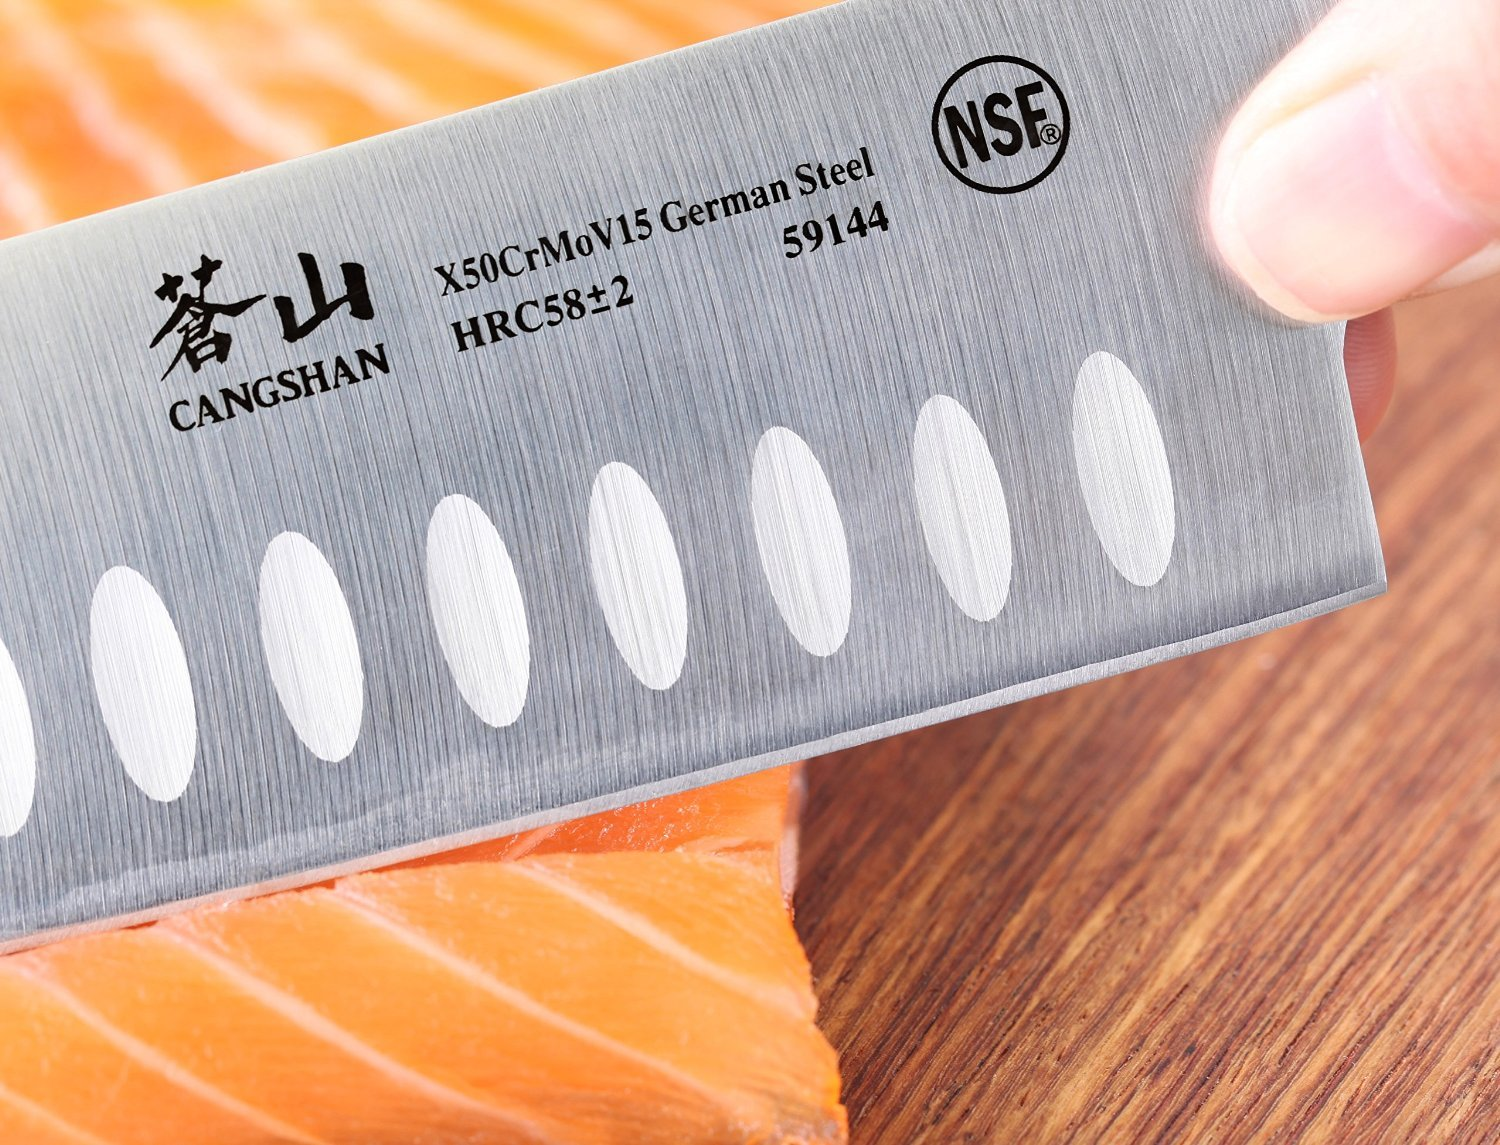 Cangshan X Series 59144 German Steel Forged Santoku Knife, 7-Inch by Cangshan (Image #4)